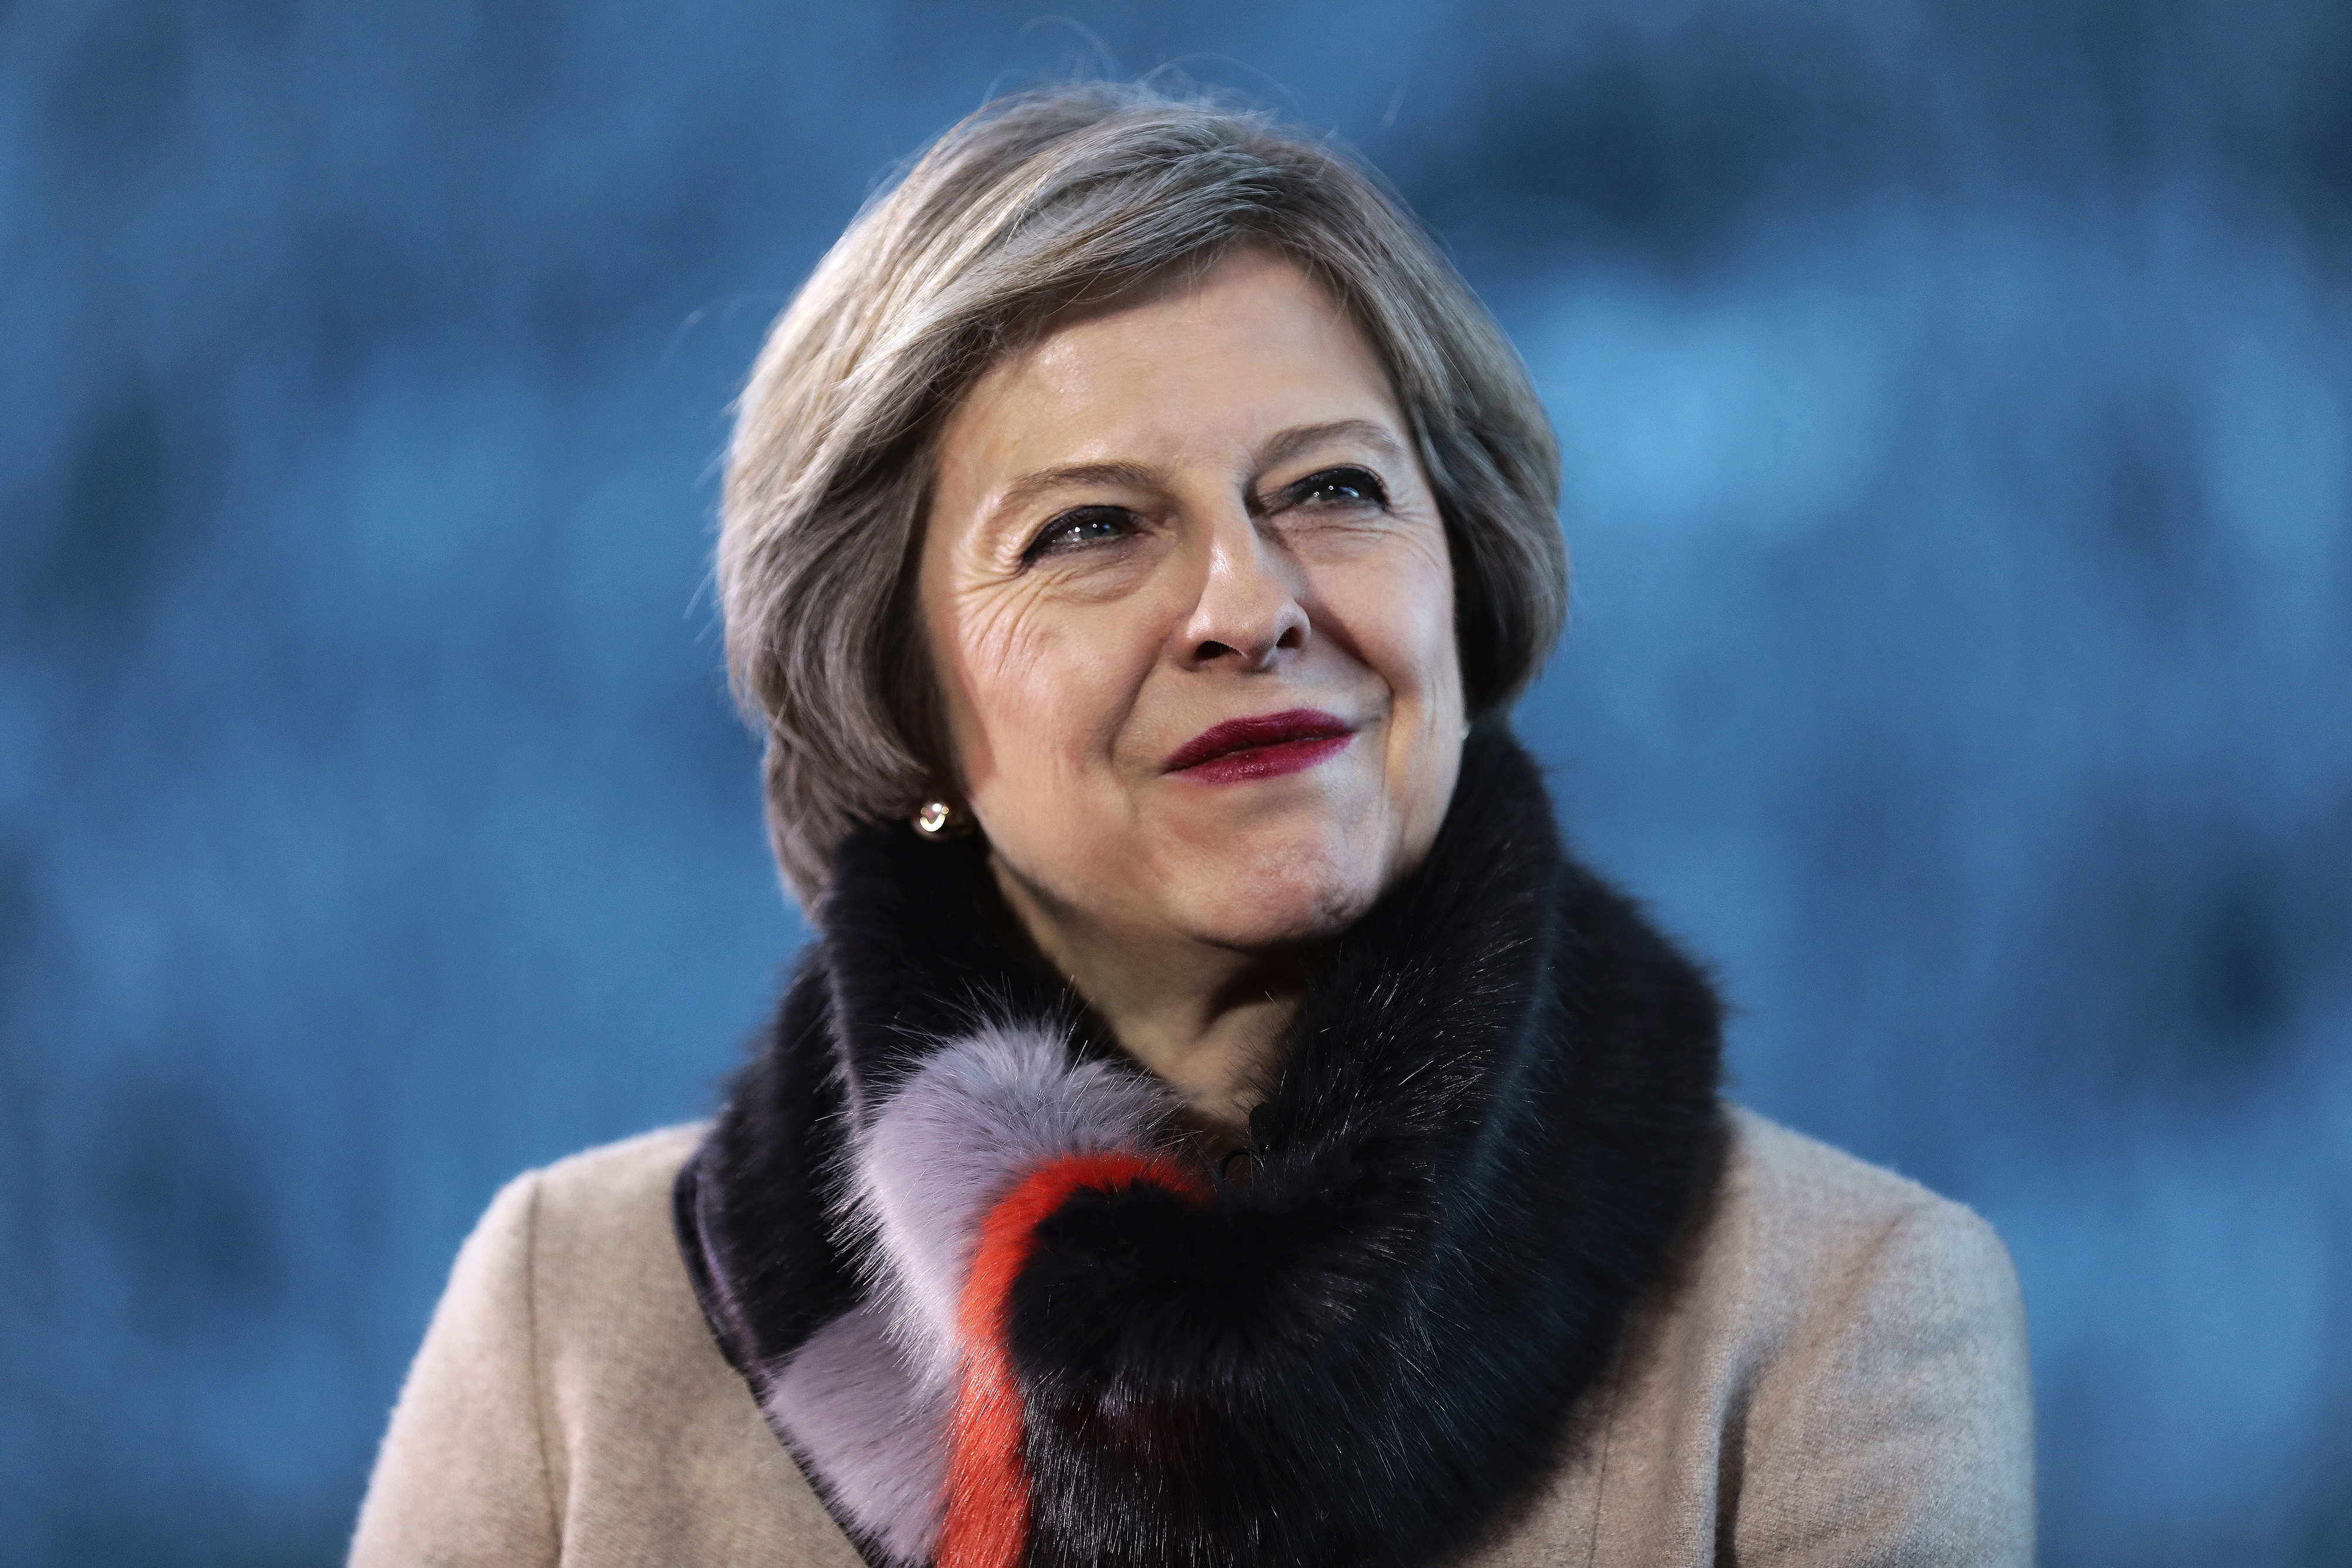 Theresa May, U.K. prime minister, reacts during a Bloomberg Television interview at the World Economic Forum (WEF) in Davos, Switzerland, on Thursday, Jan. 19, 2017. World leaders, influential executives, bankers and policy makers attend the 47th annual meeting of the World Economic Forum in Davos from Jan. 17 - 20.